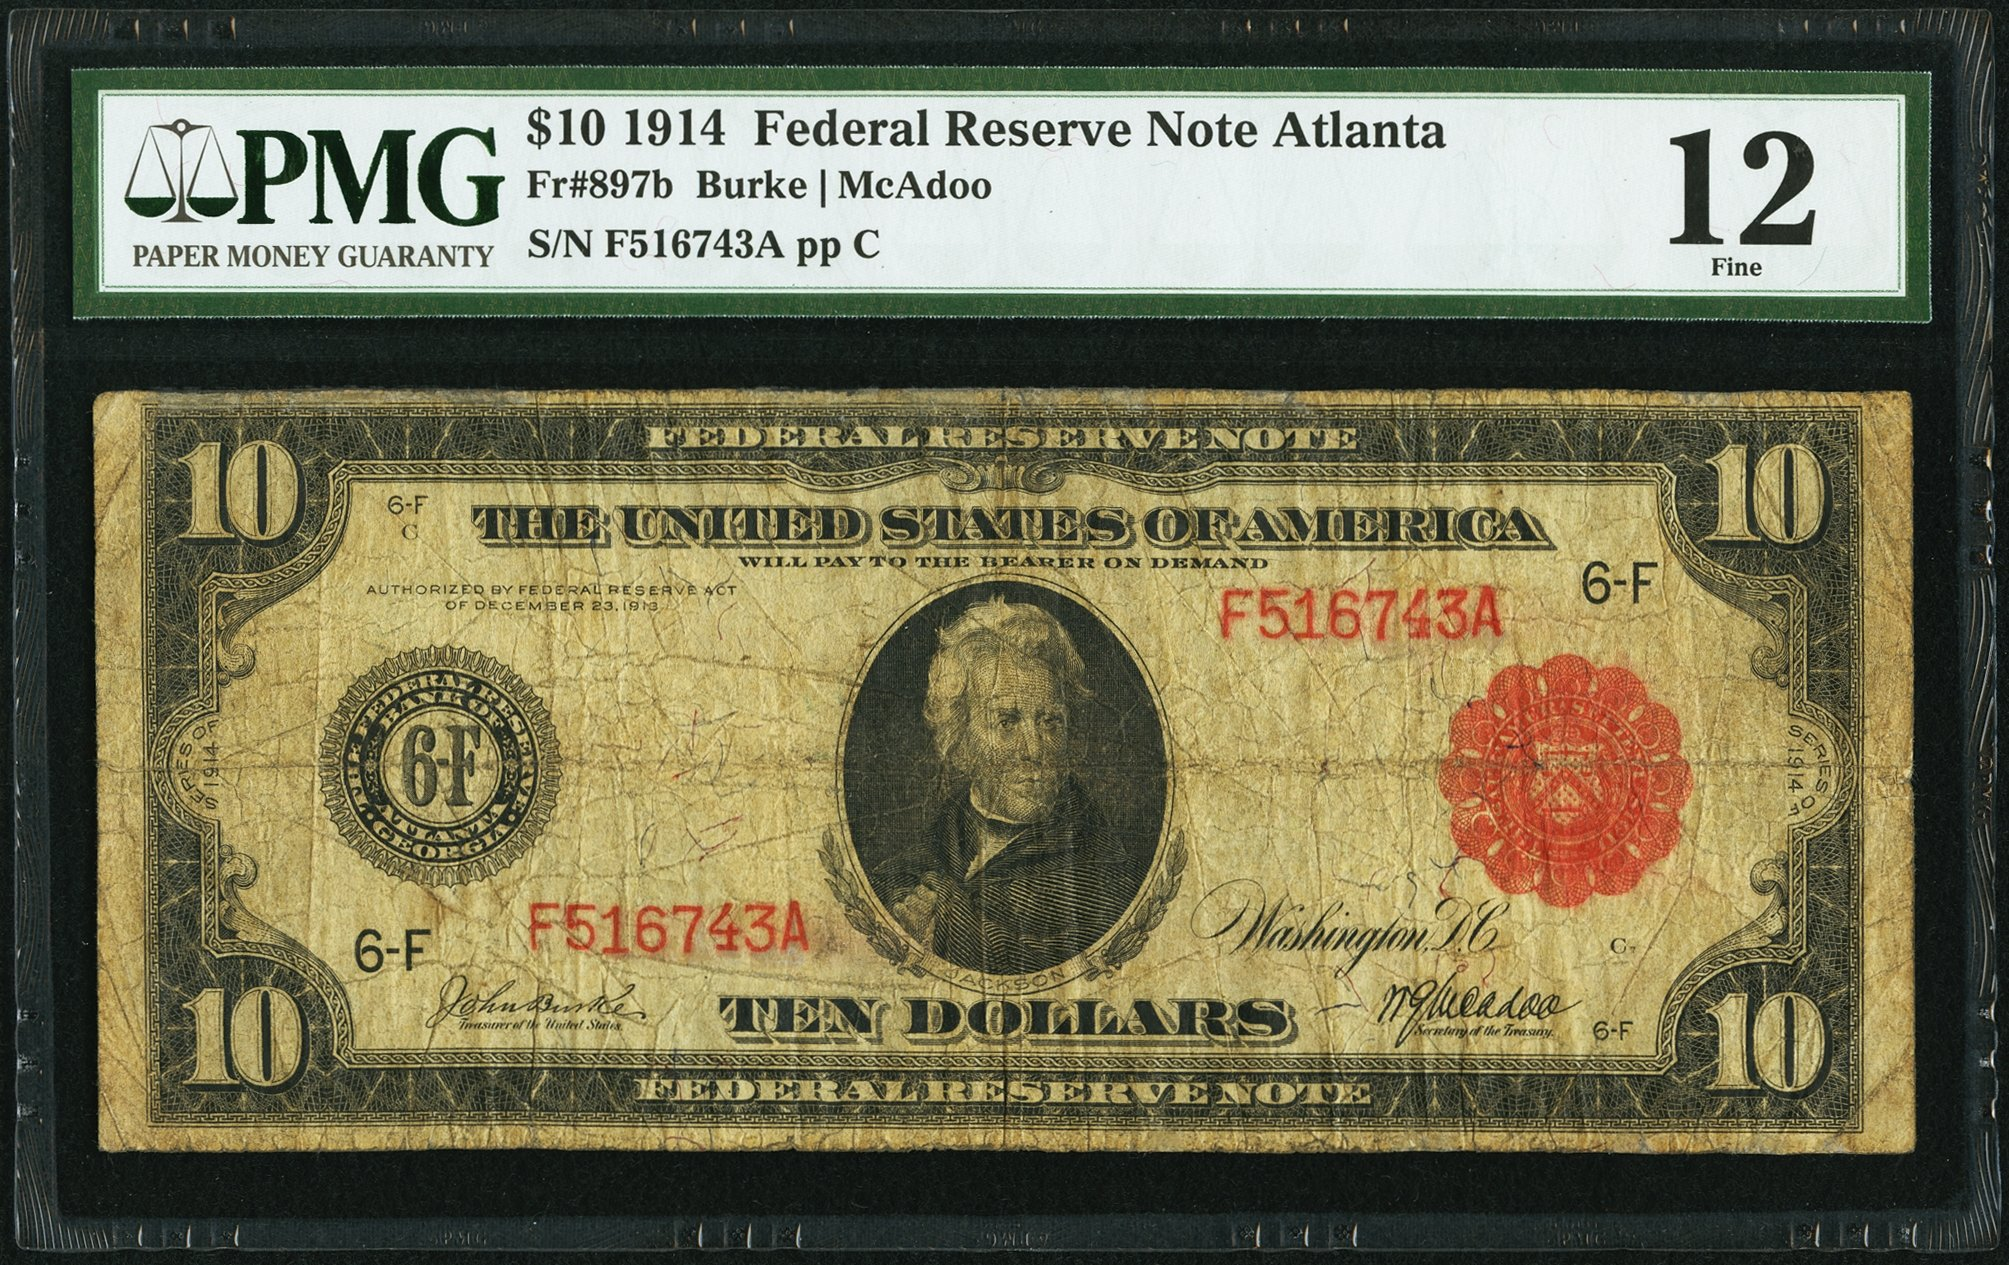 USA FR 1938-E 2003A RICHMOND FEDERAL RESERVE NOTES FRN $2 DOLLARS UNC BANKNOTE